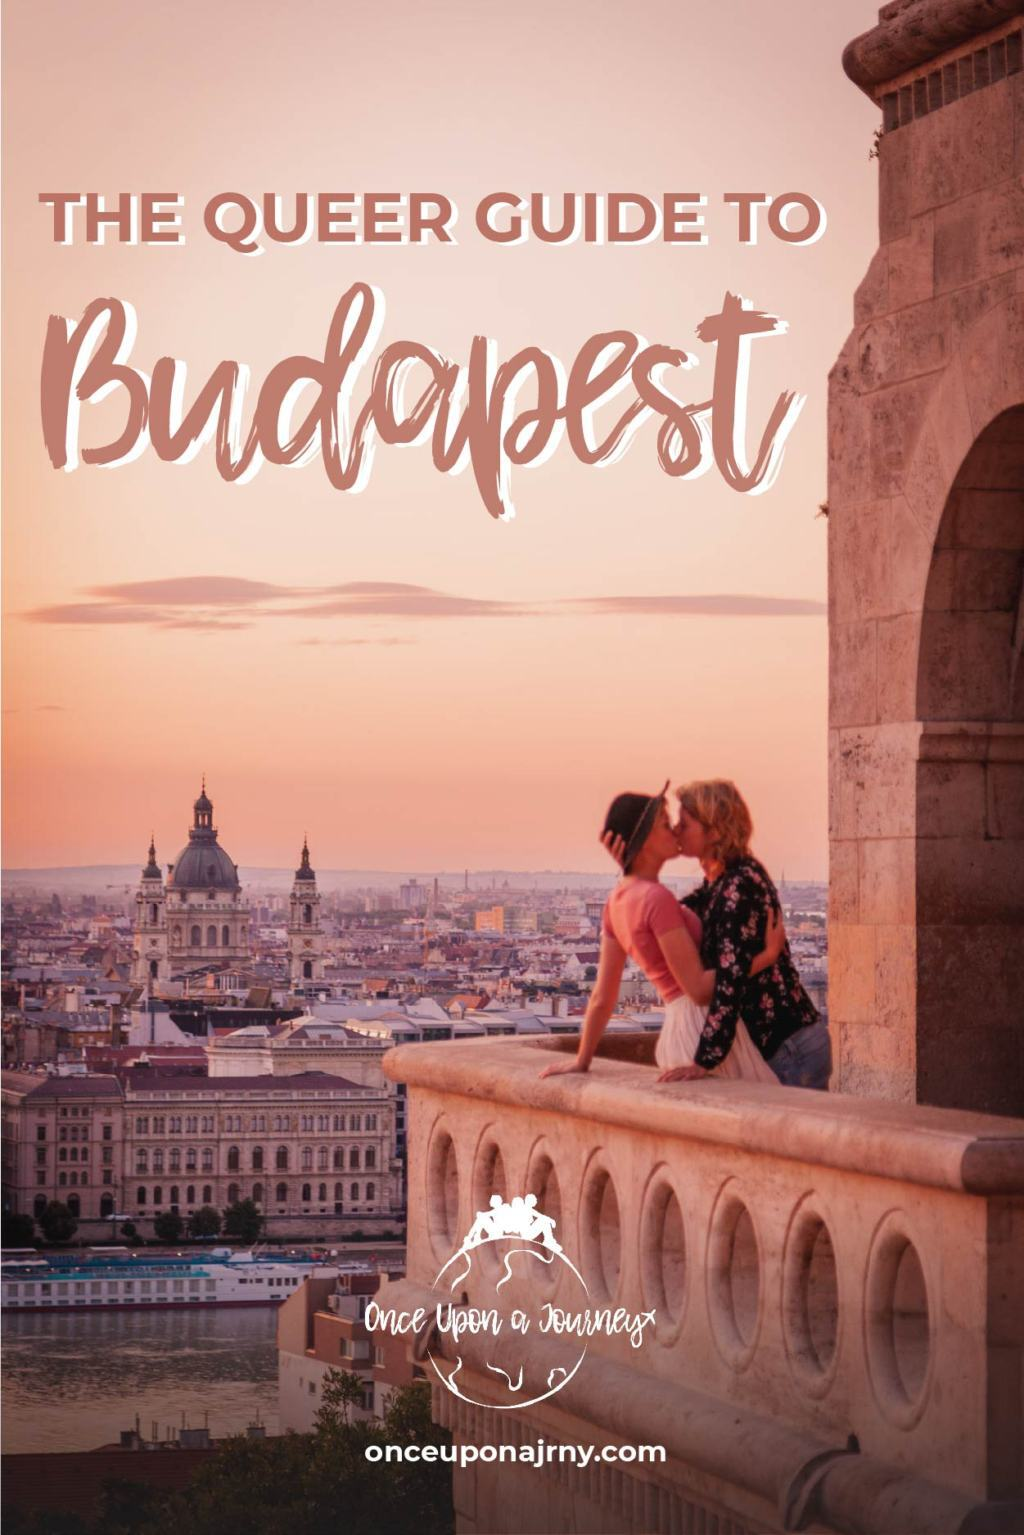 The Queer Guide to Budapest